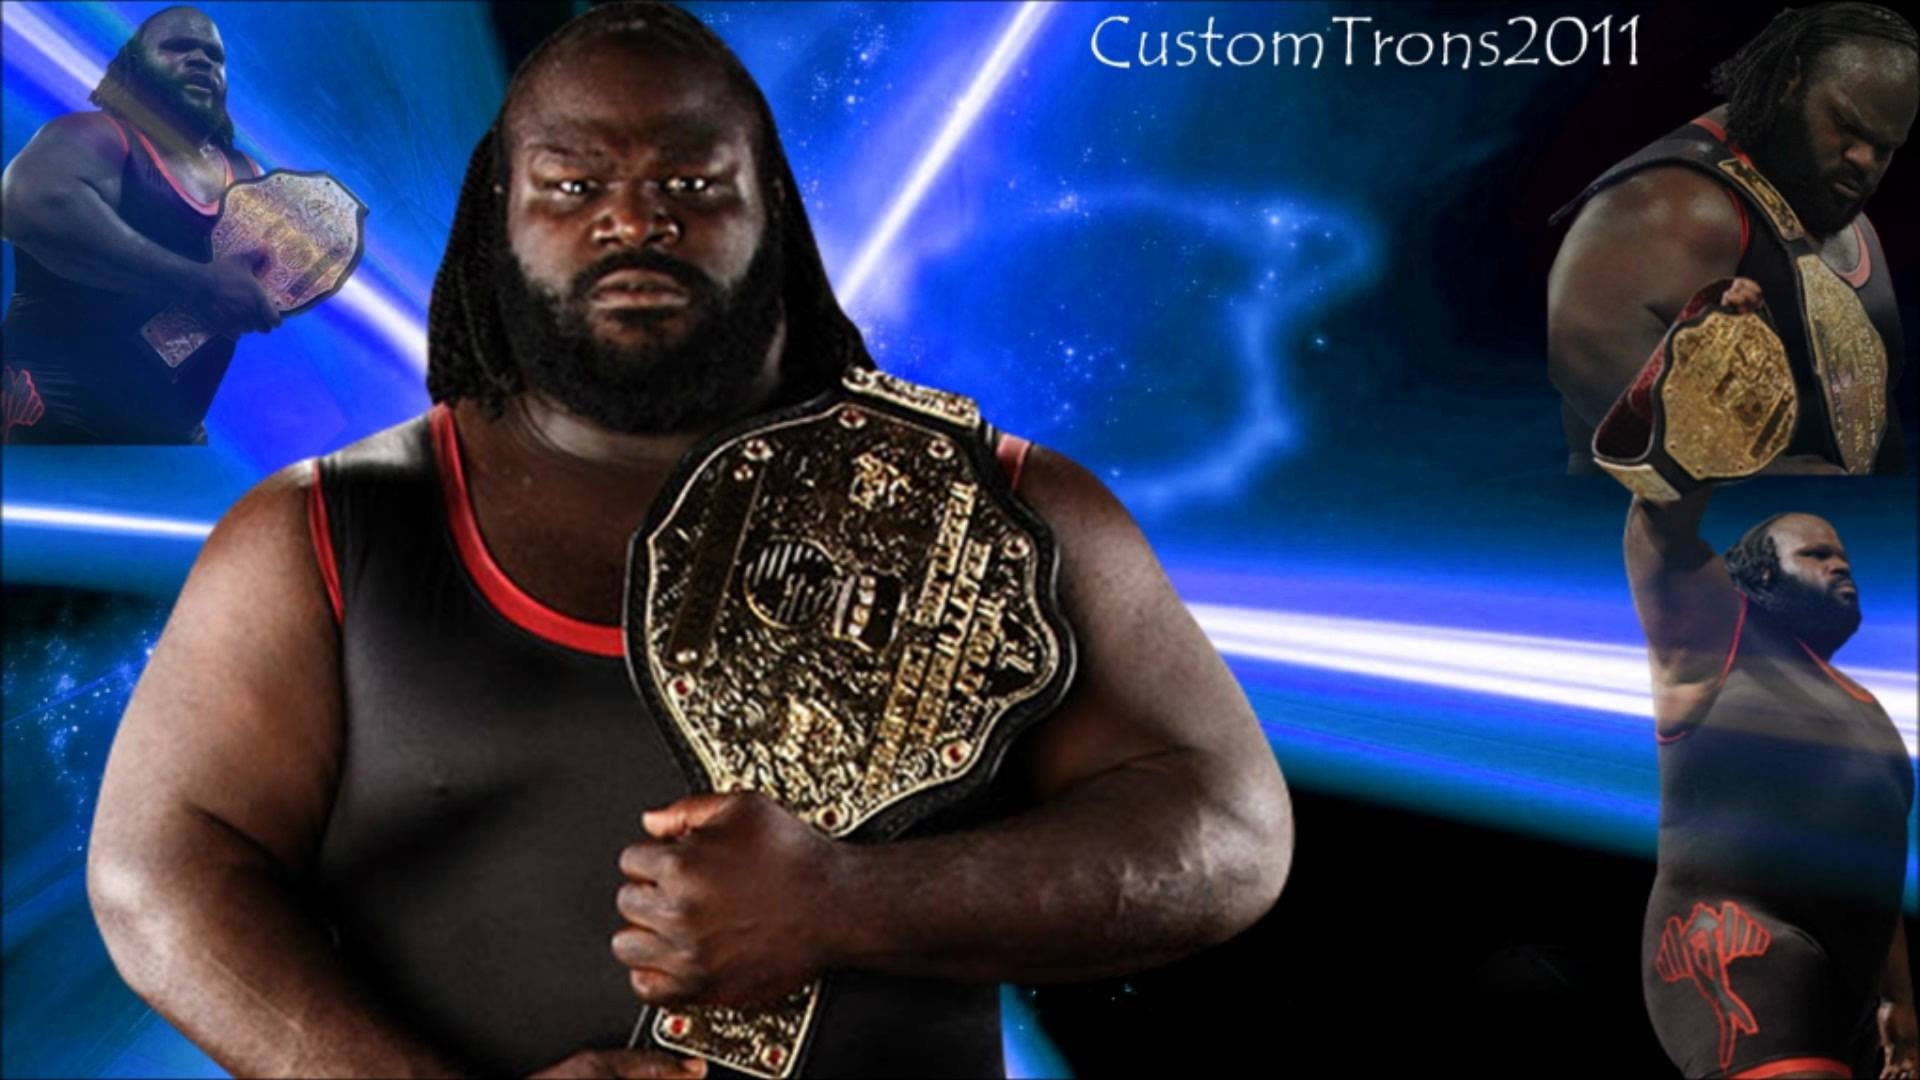 mark henry wwe champion wallpaper